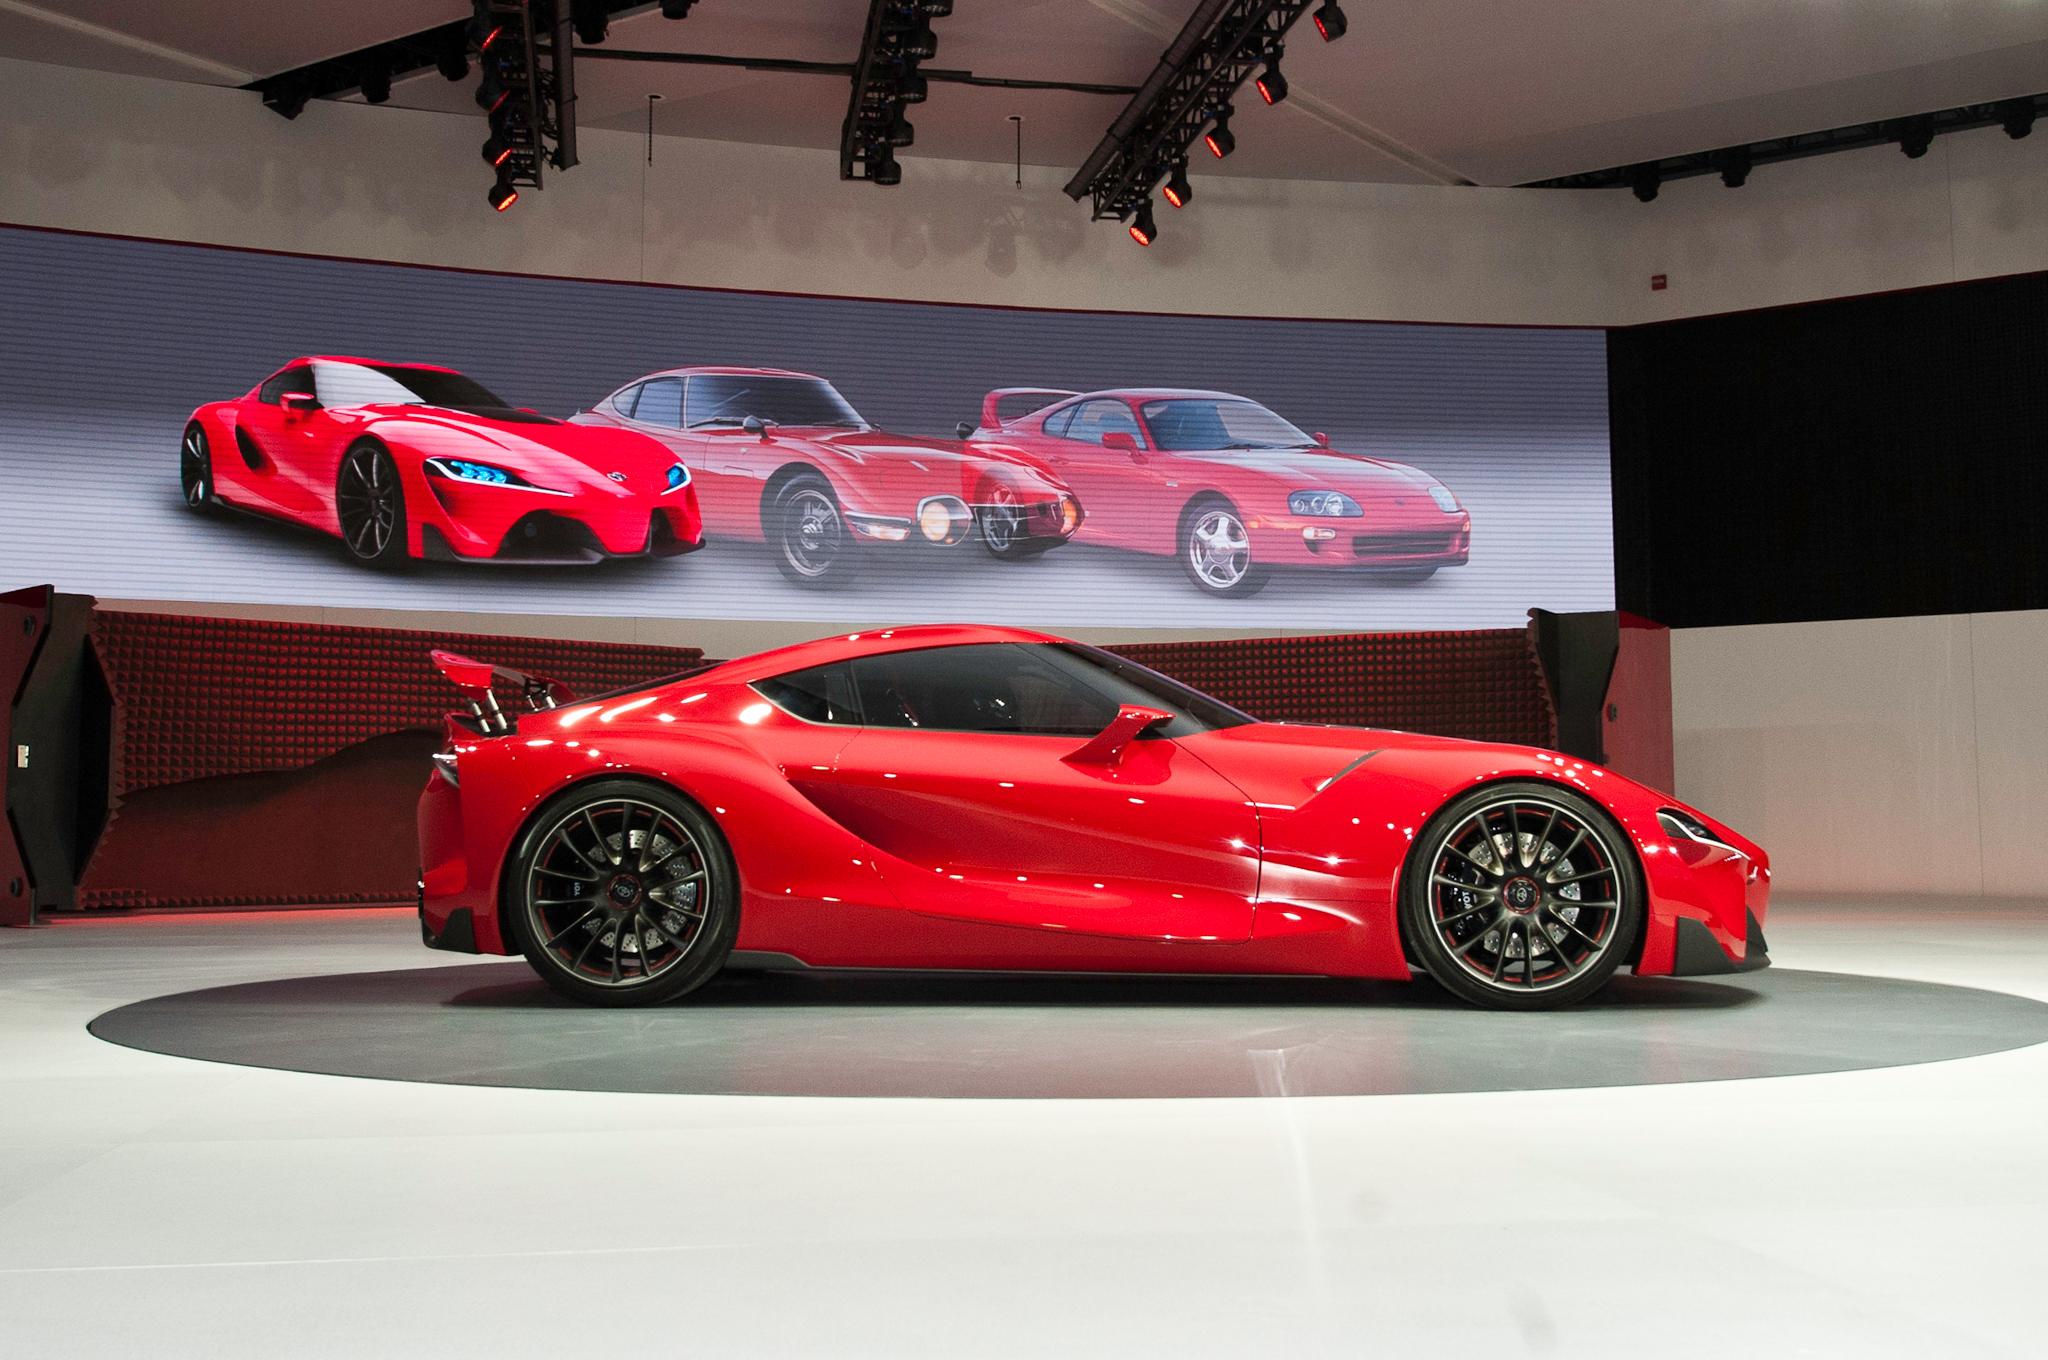 High Resolution Wallpaper | Toyota FT-1 Concept 2048x1360 px